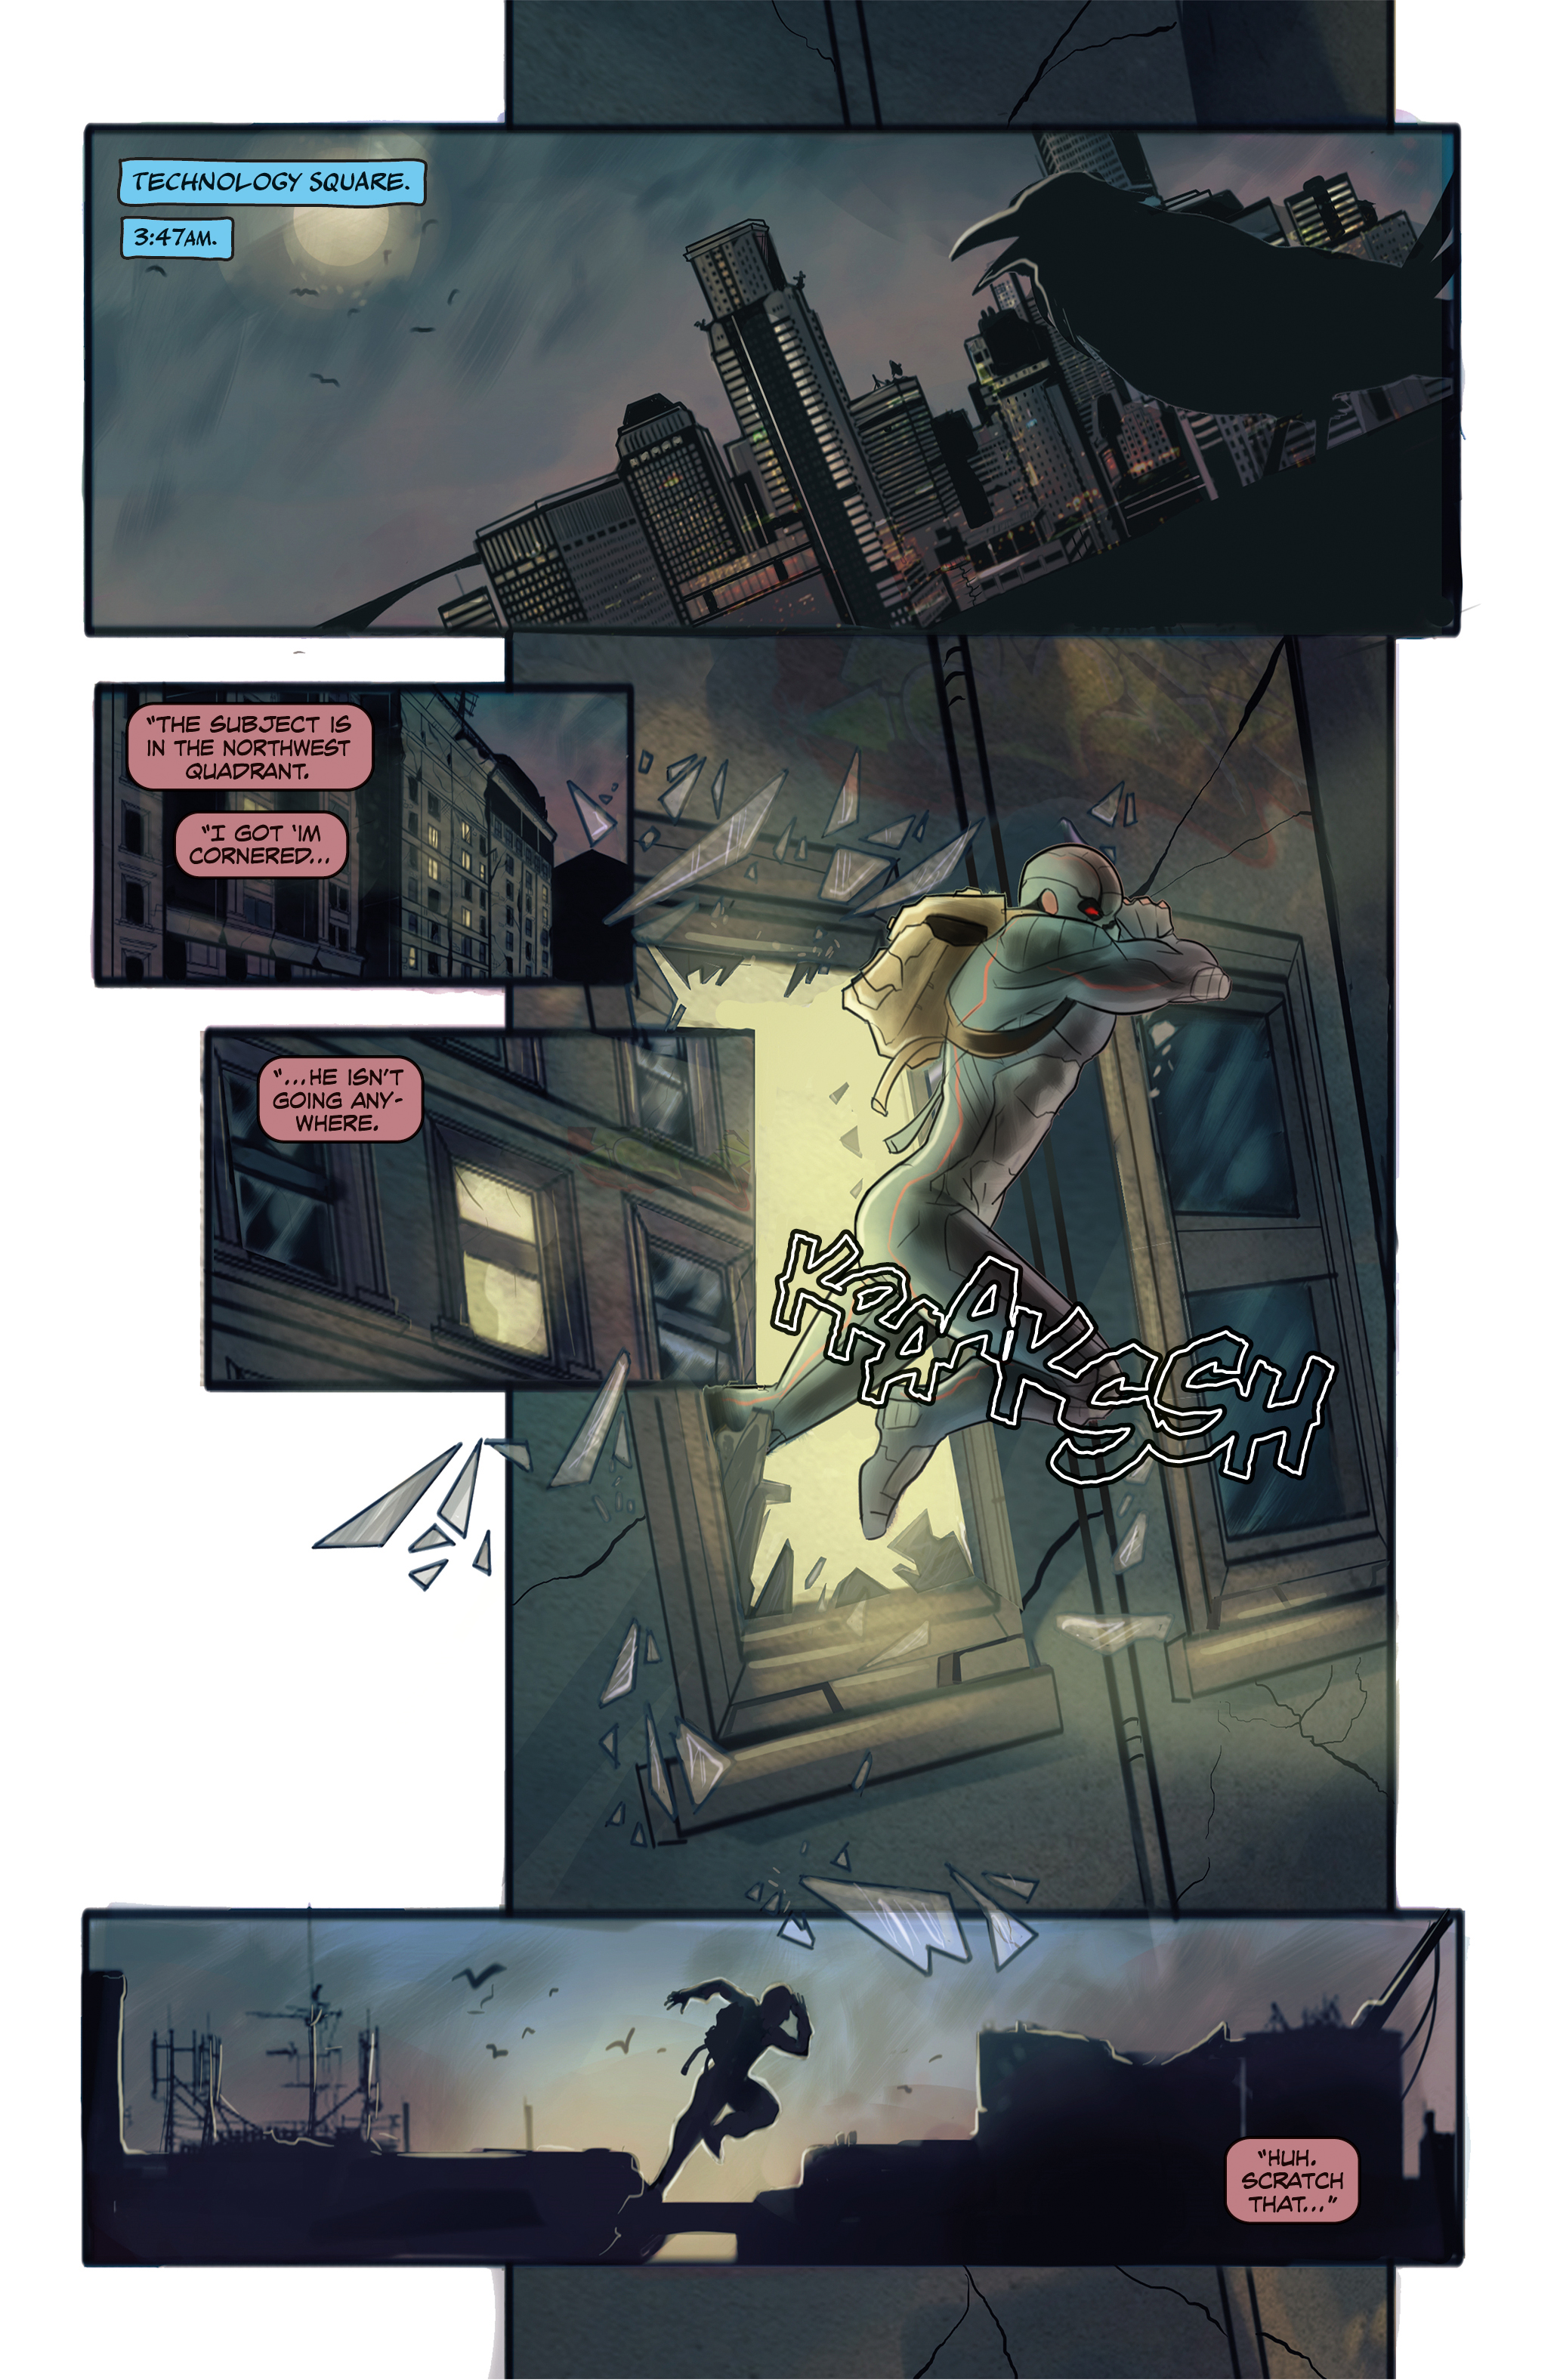 Shelter Division #1 Page 1-01.jpg